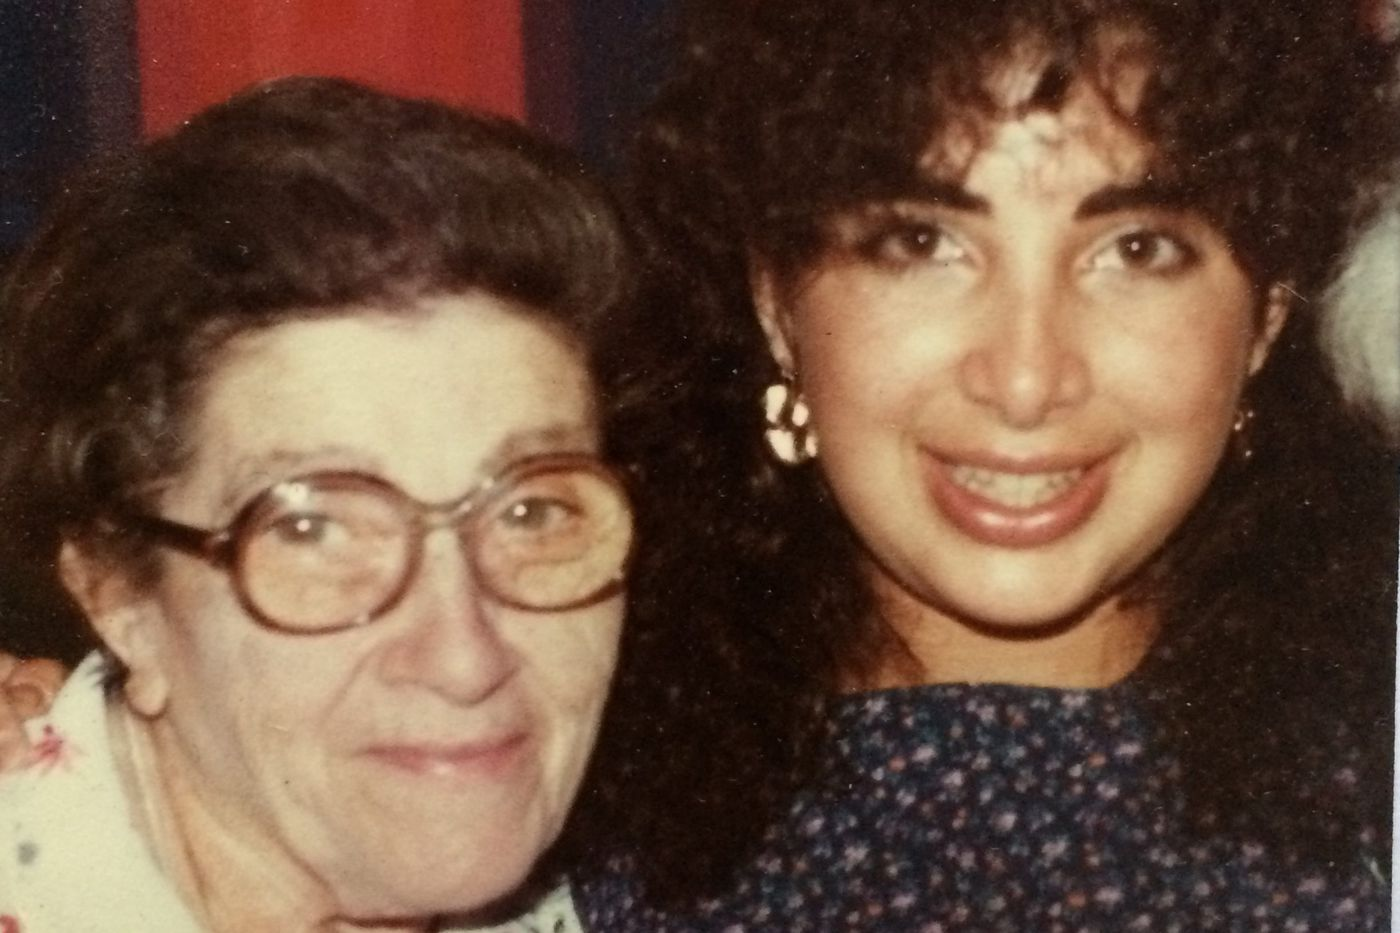 On Yom Kippur, I think of my grandmother and the sweaters I didn't love enough